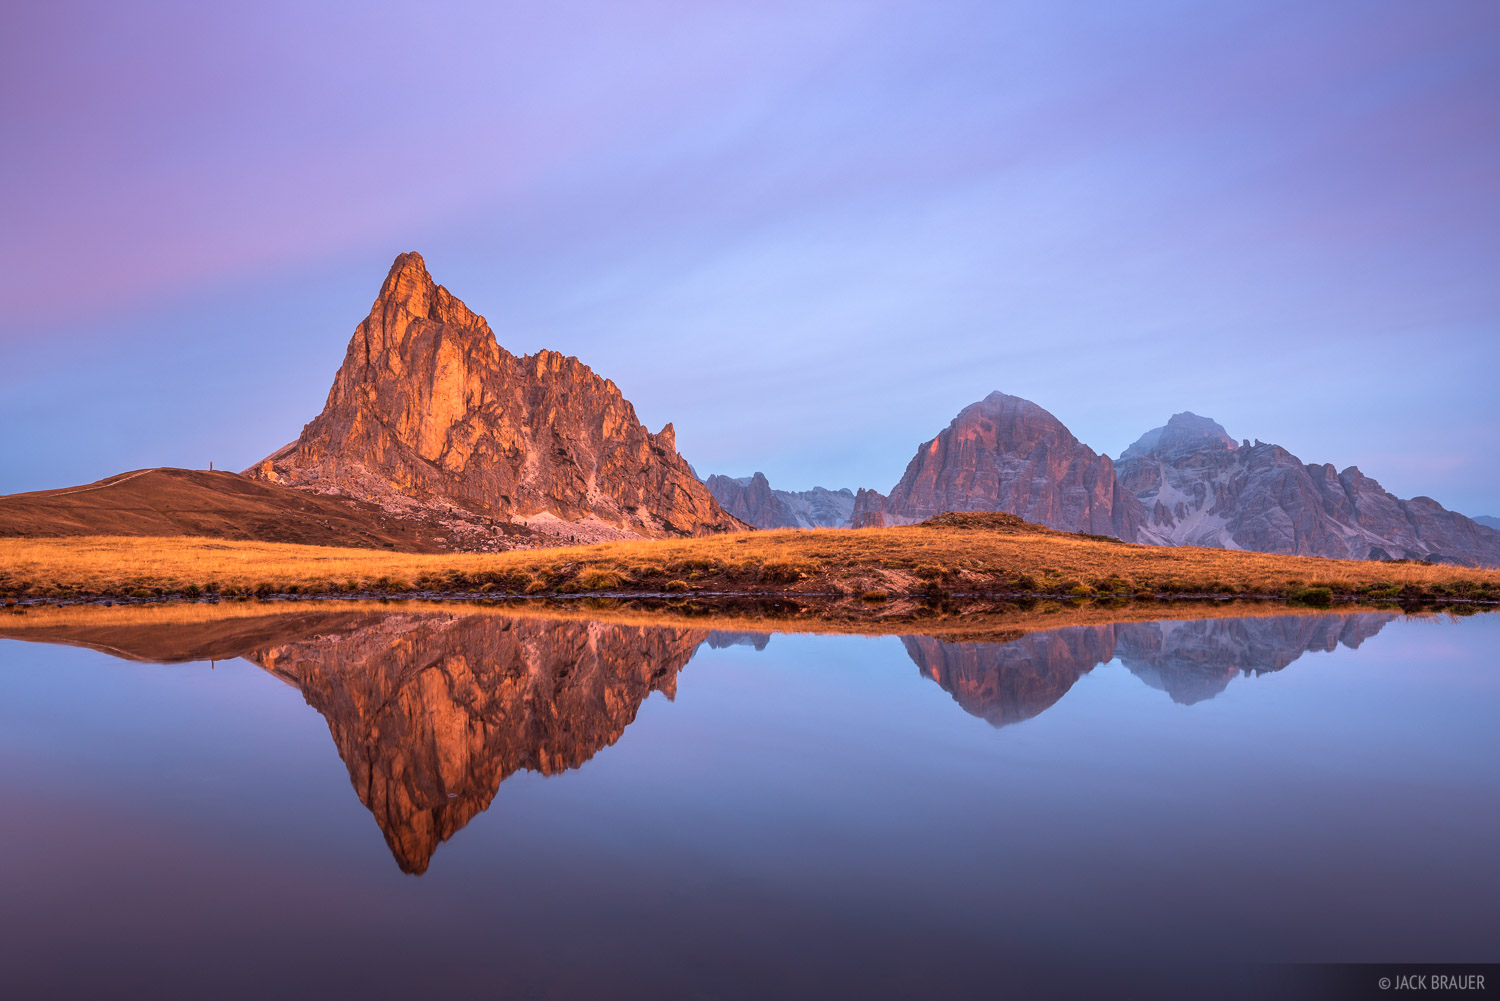 Dolomites, Italy, Passo Giau, Ra Gusela, Tofana de Rozes, October, reflection, Alps, photo